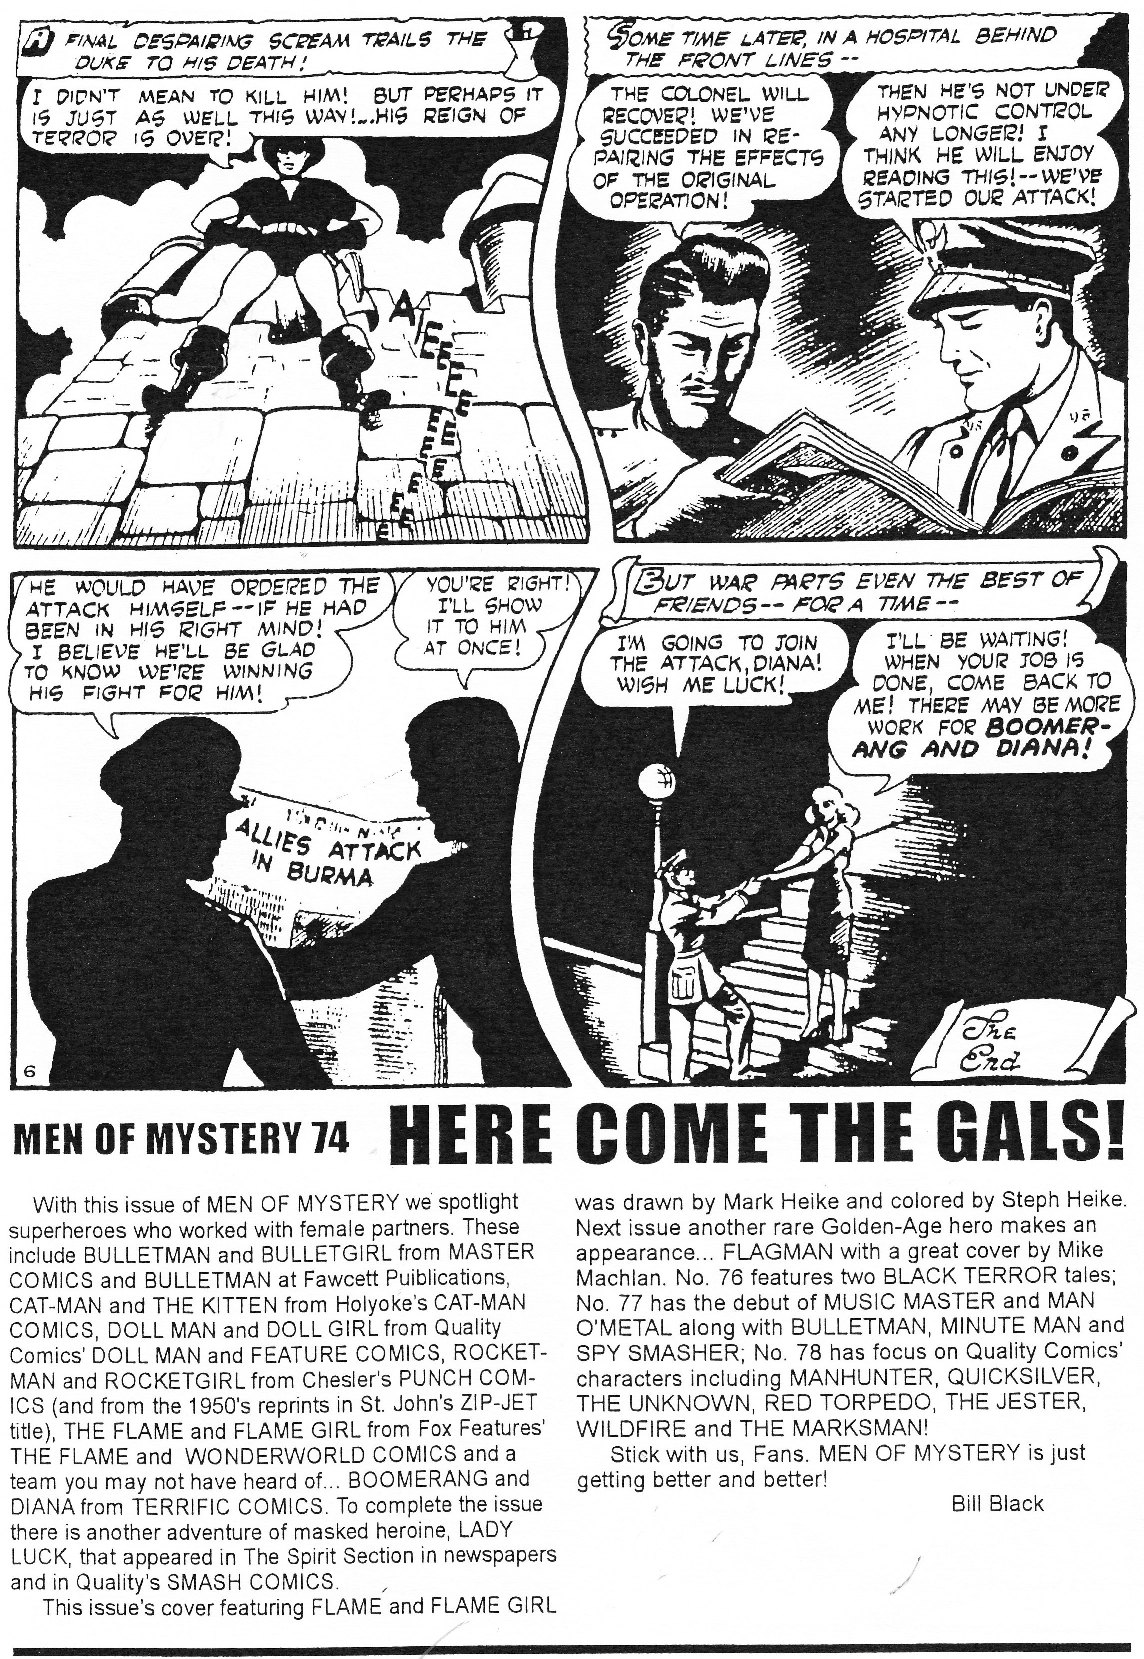 Read online Men of Mystery Comics comic -  Issue #74 - 22